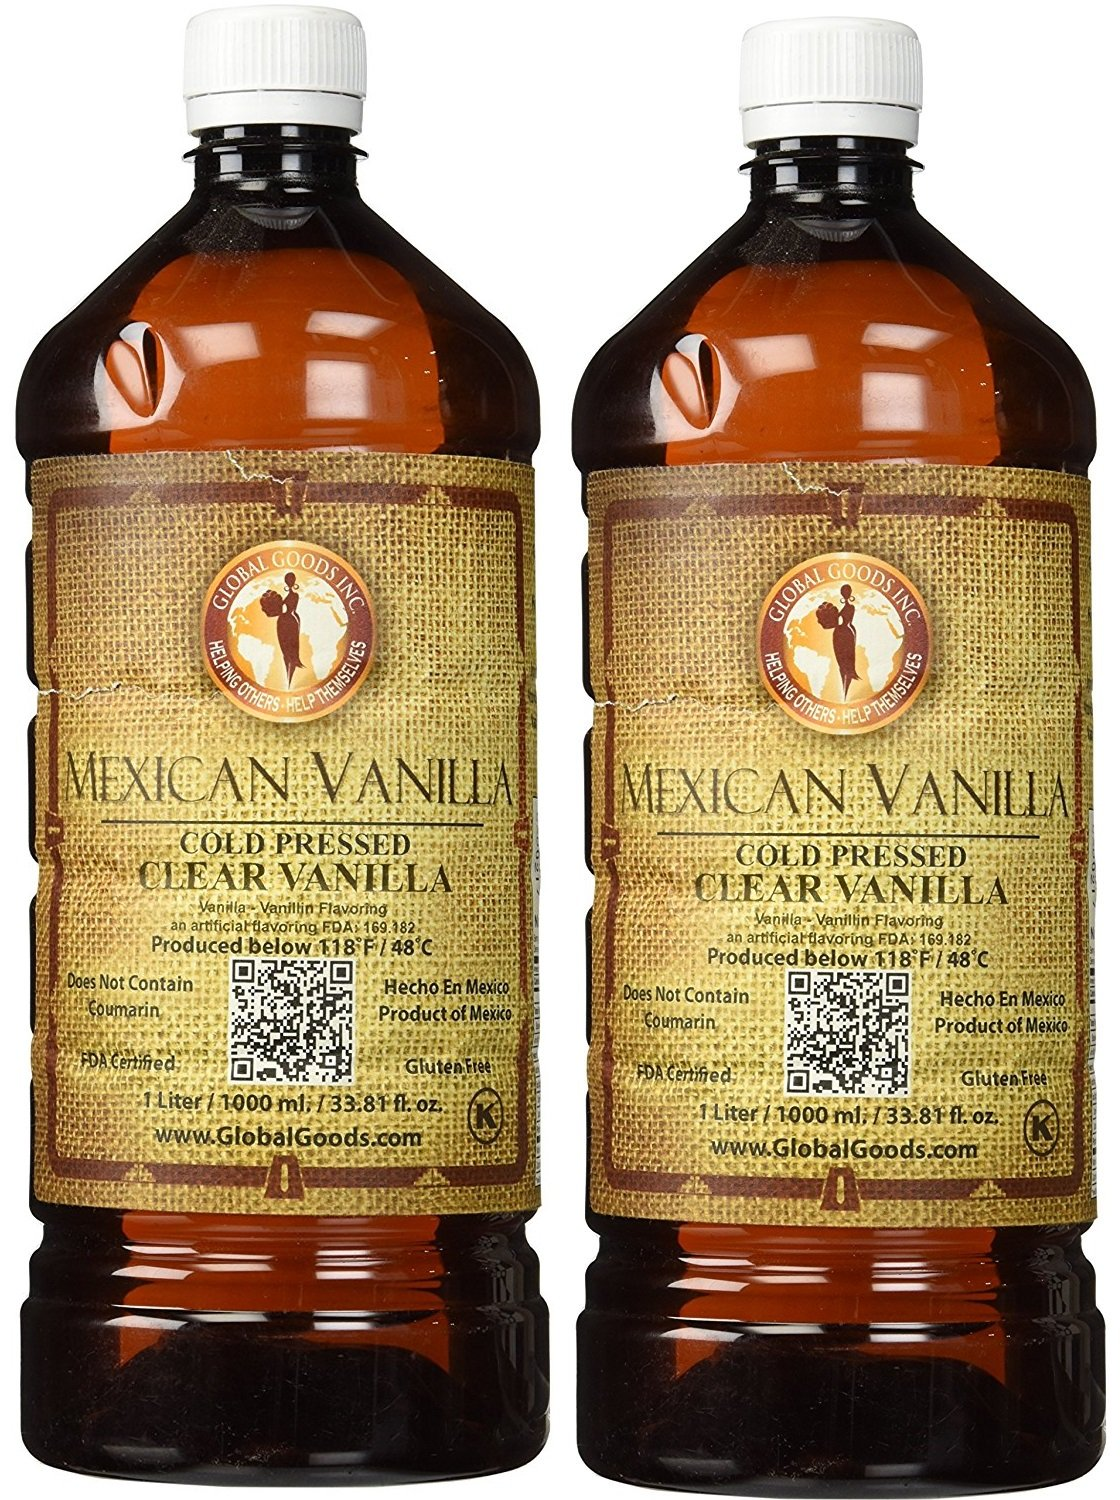 Global Goods Clear Mexican Vanilla Cold Pressed 1 Liter / 33.8 Oz (Pack of 2) by Global Goods Clear Mexican Vanilla